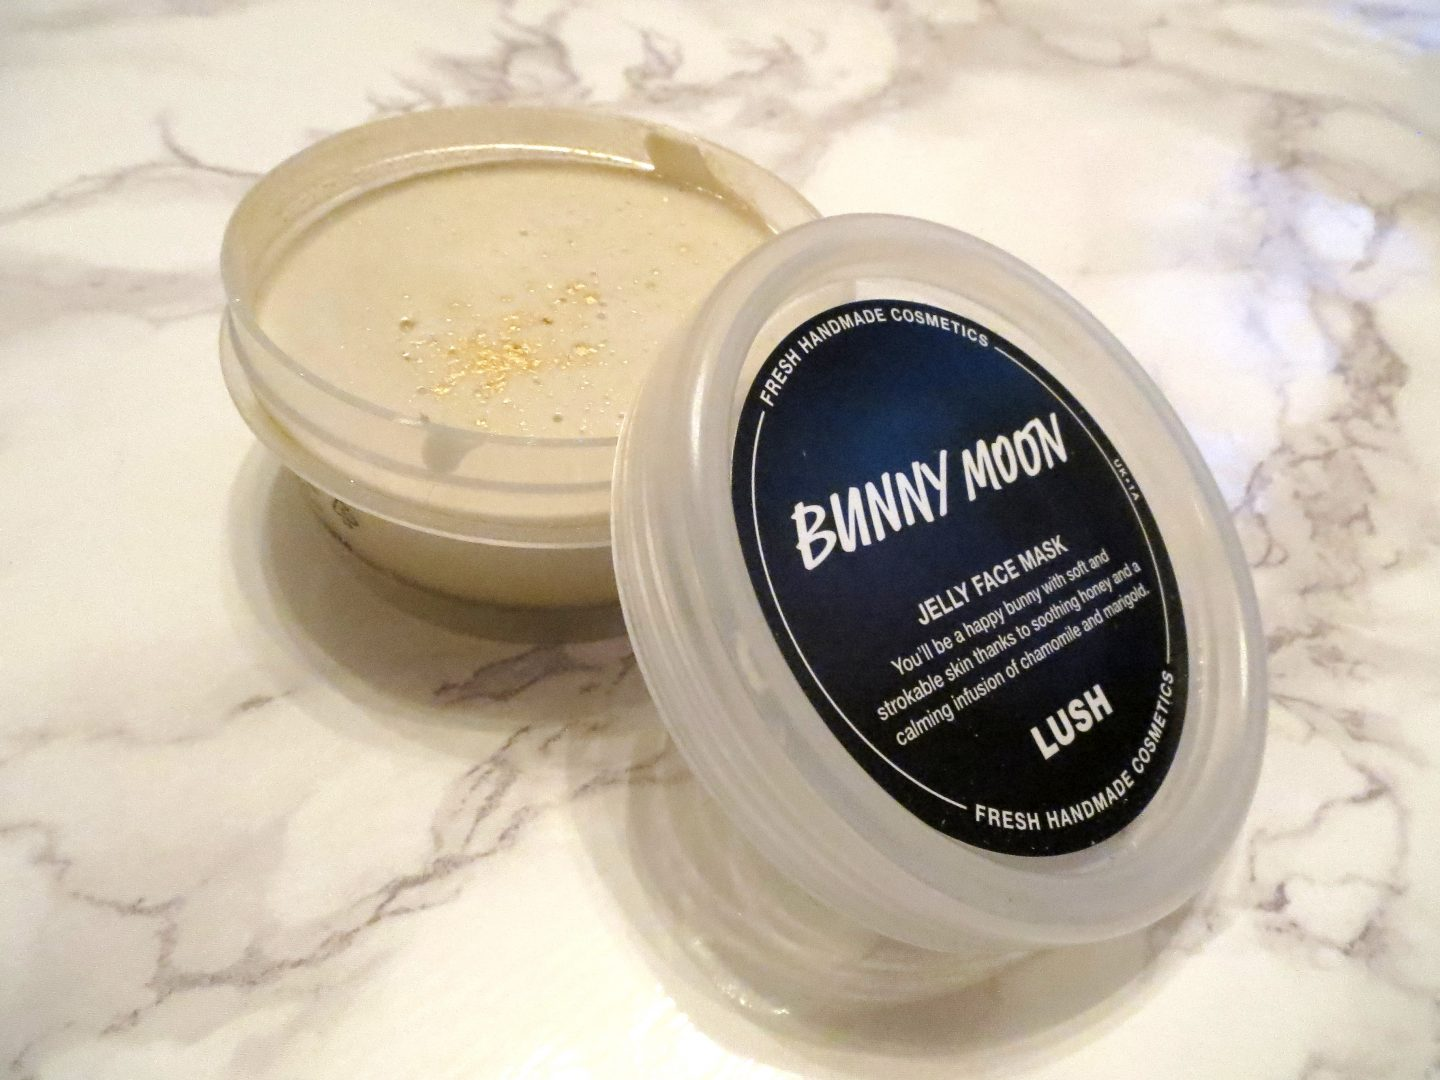 buny moon jelly mask face mask lush haul august 2017